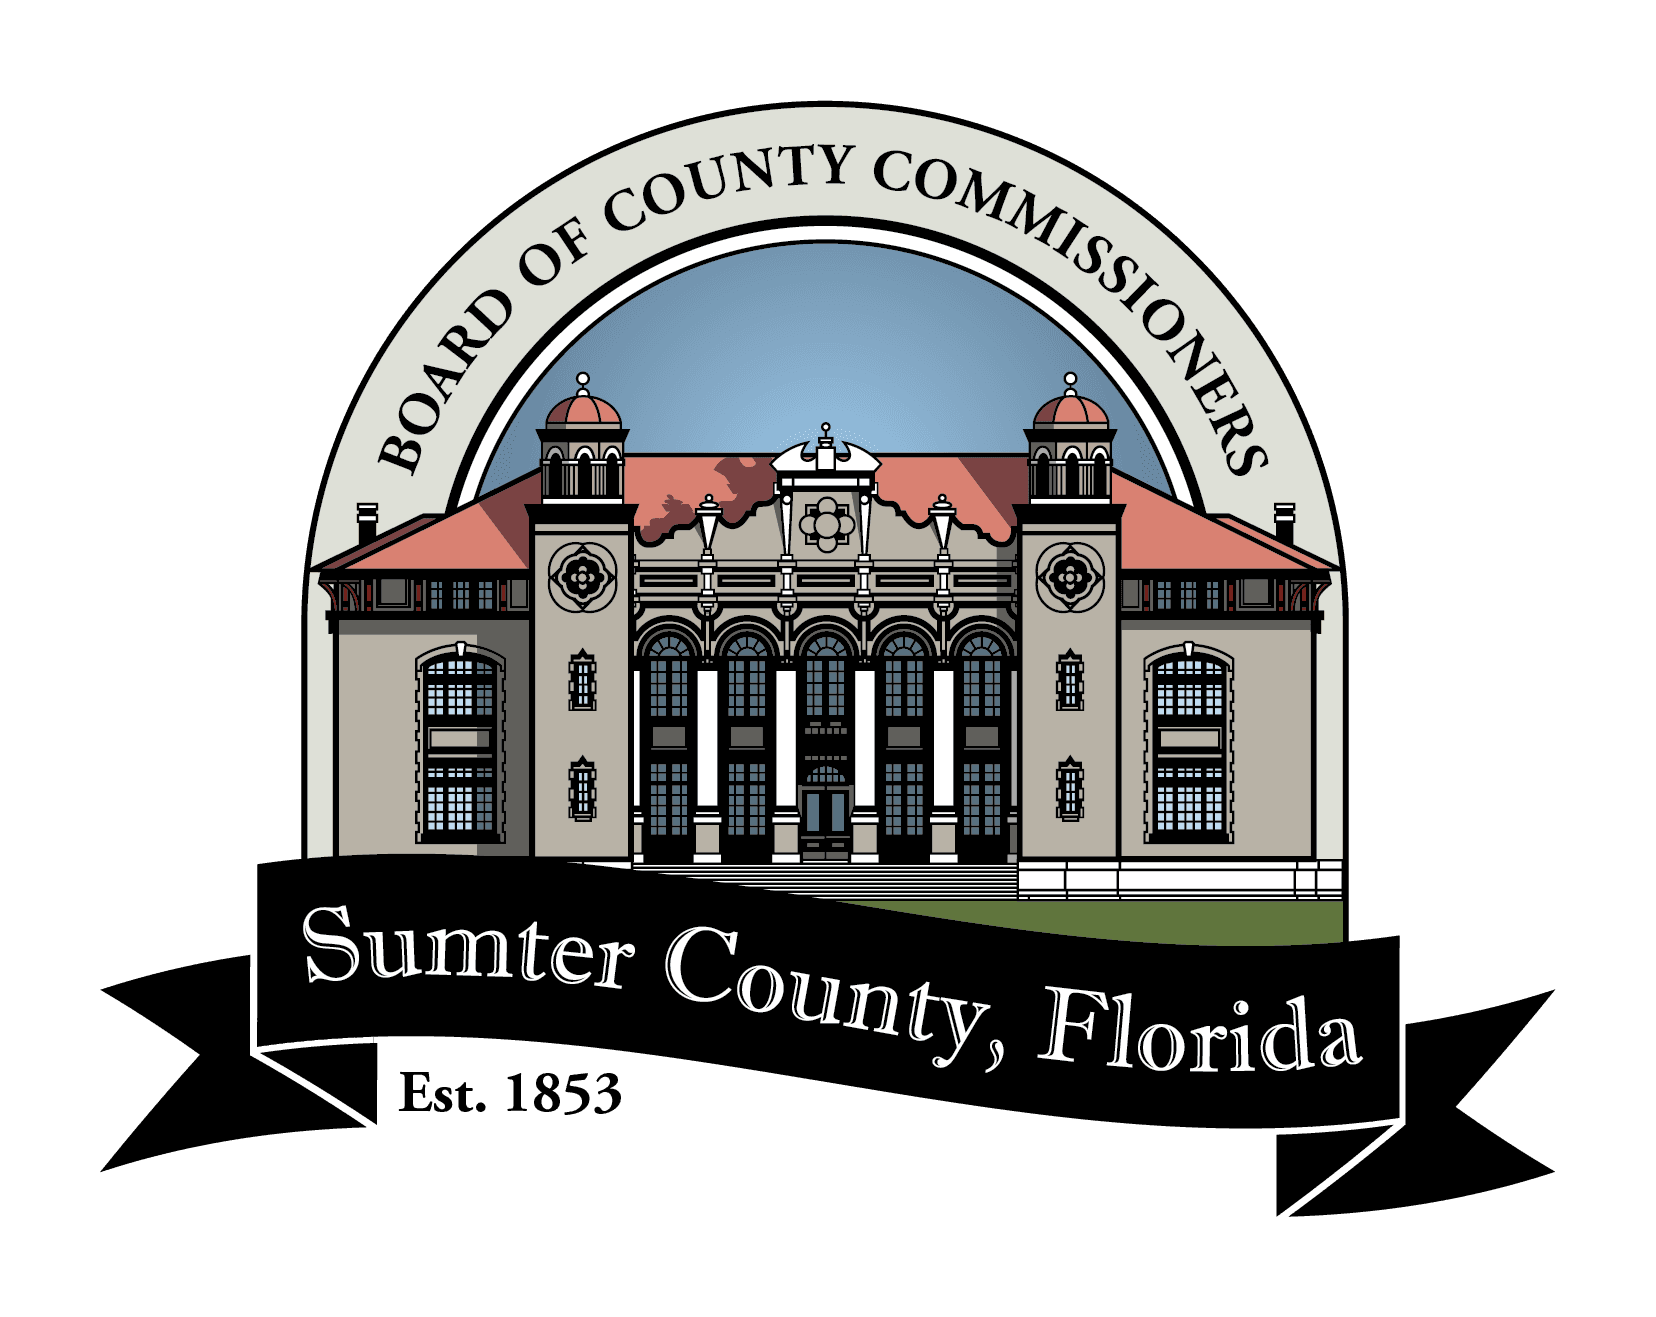 Inspections | Sumter County, FL - Official Website